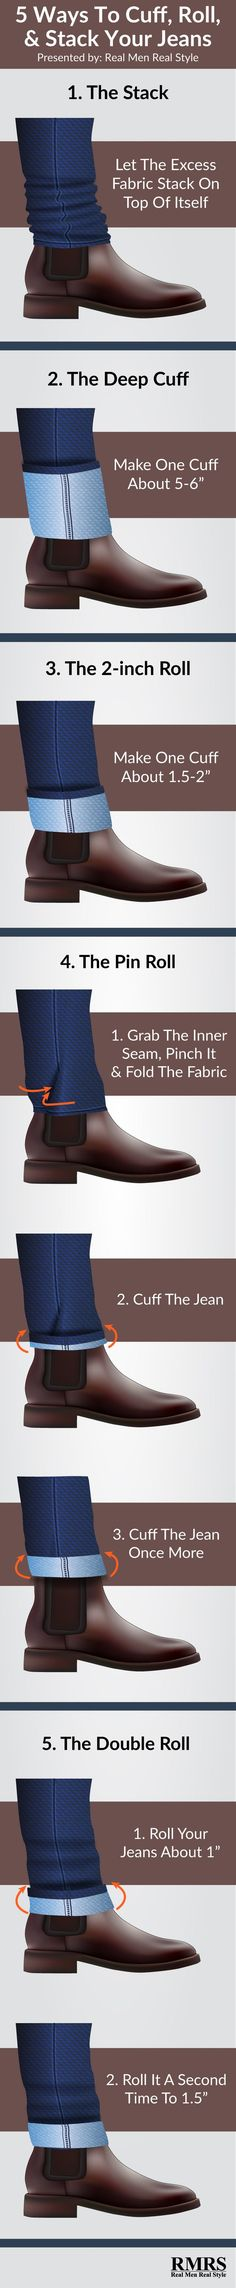 The Right Way To Cuff Jeans Infographic